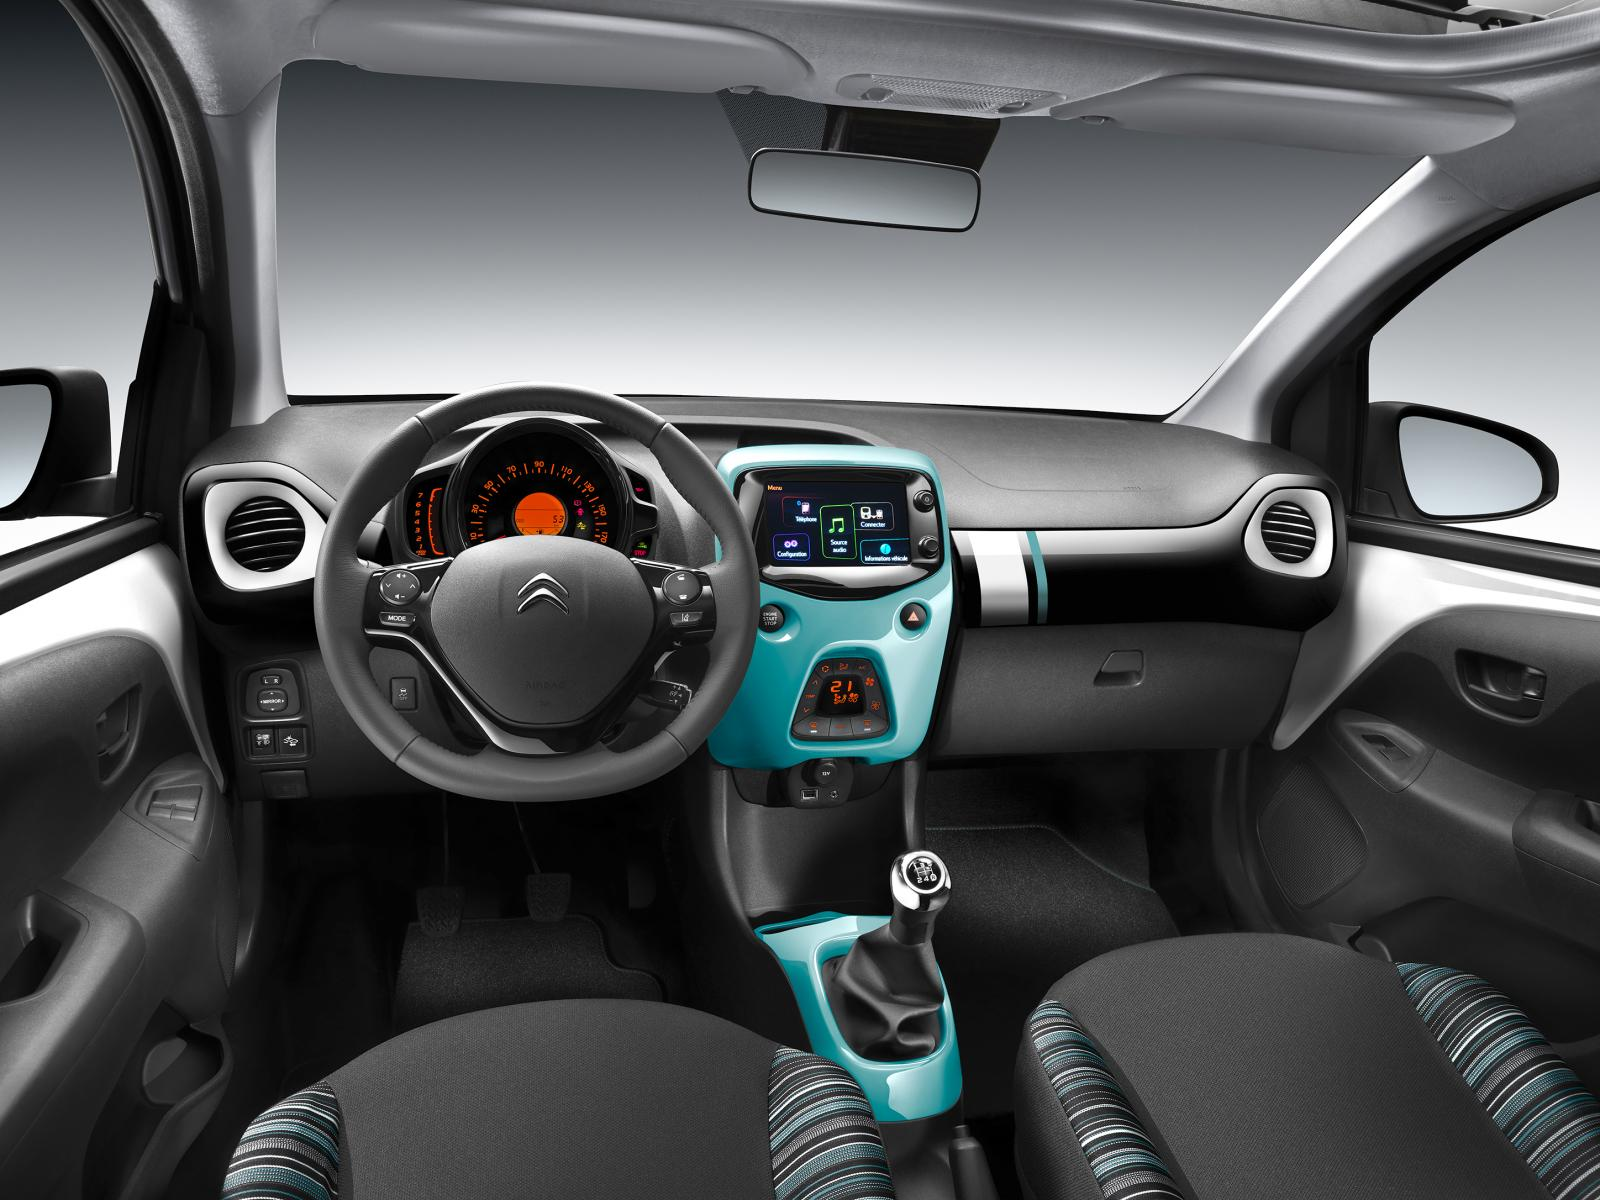 C1 Airscape Feel Edition 2016 interior Pack Color Blue Lagoon